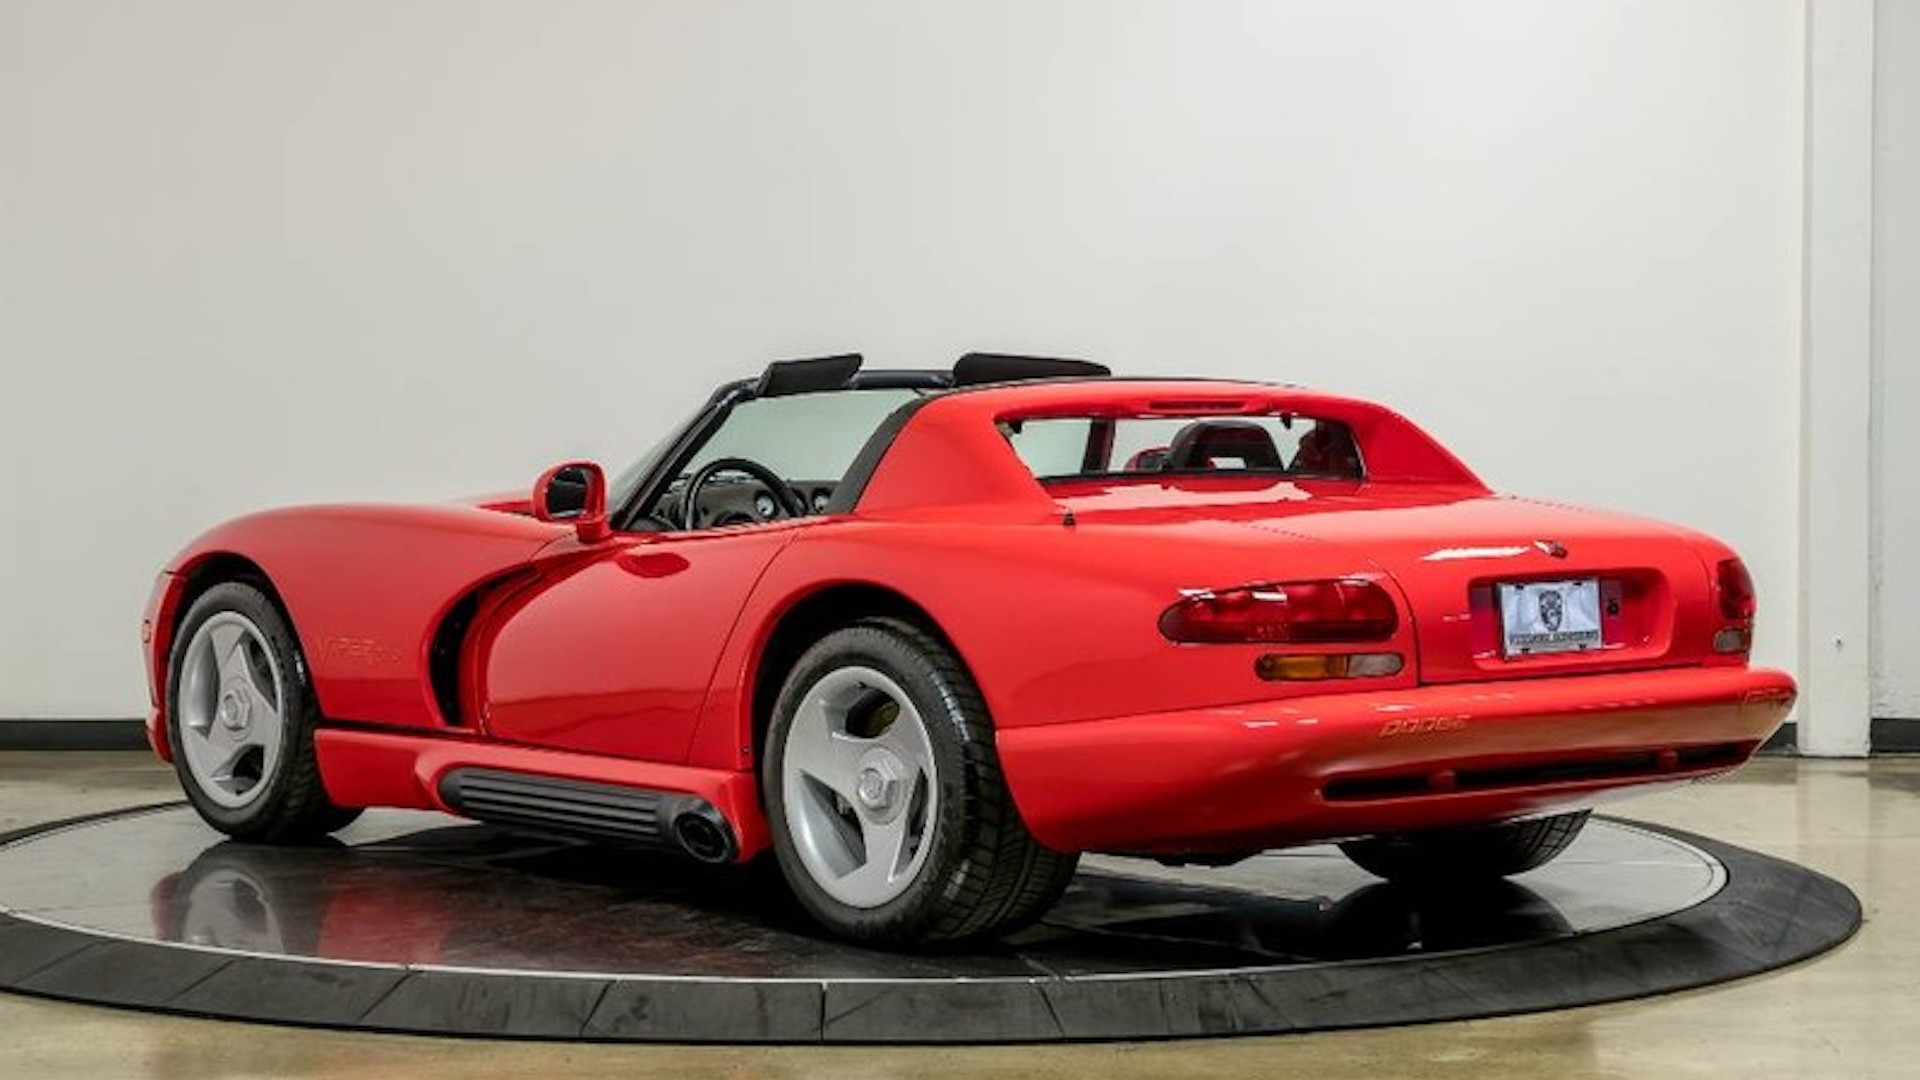 1992 Dodge Viper with 34 miles for sale